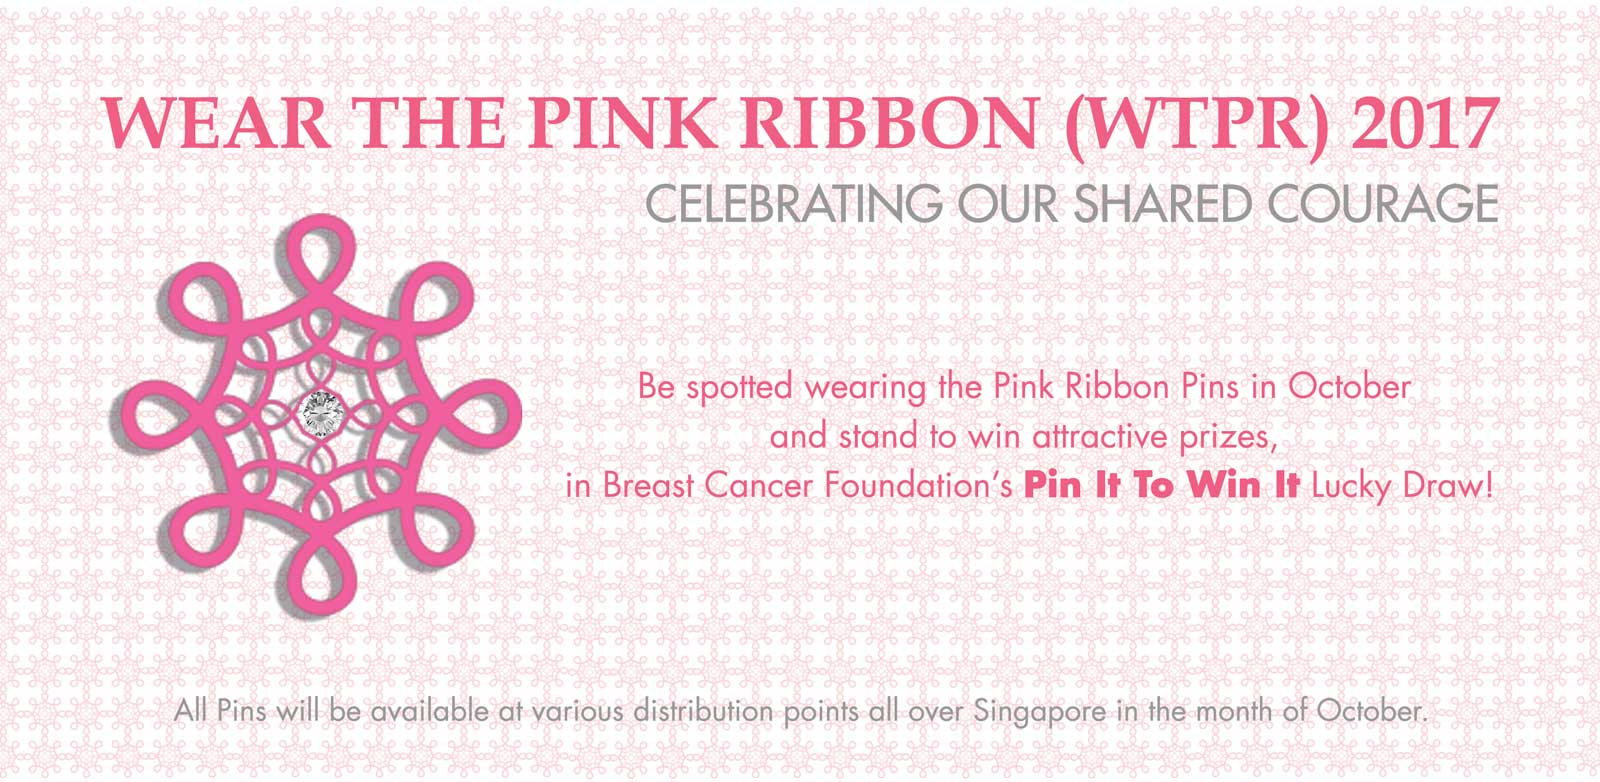 wear the pink ribbon 2017